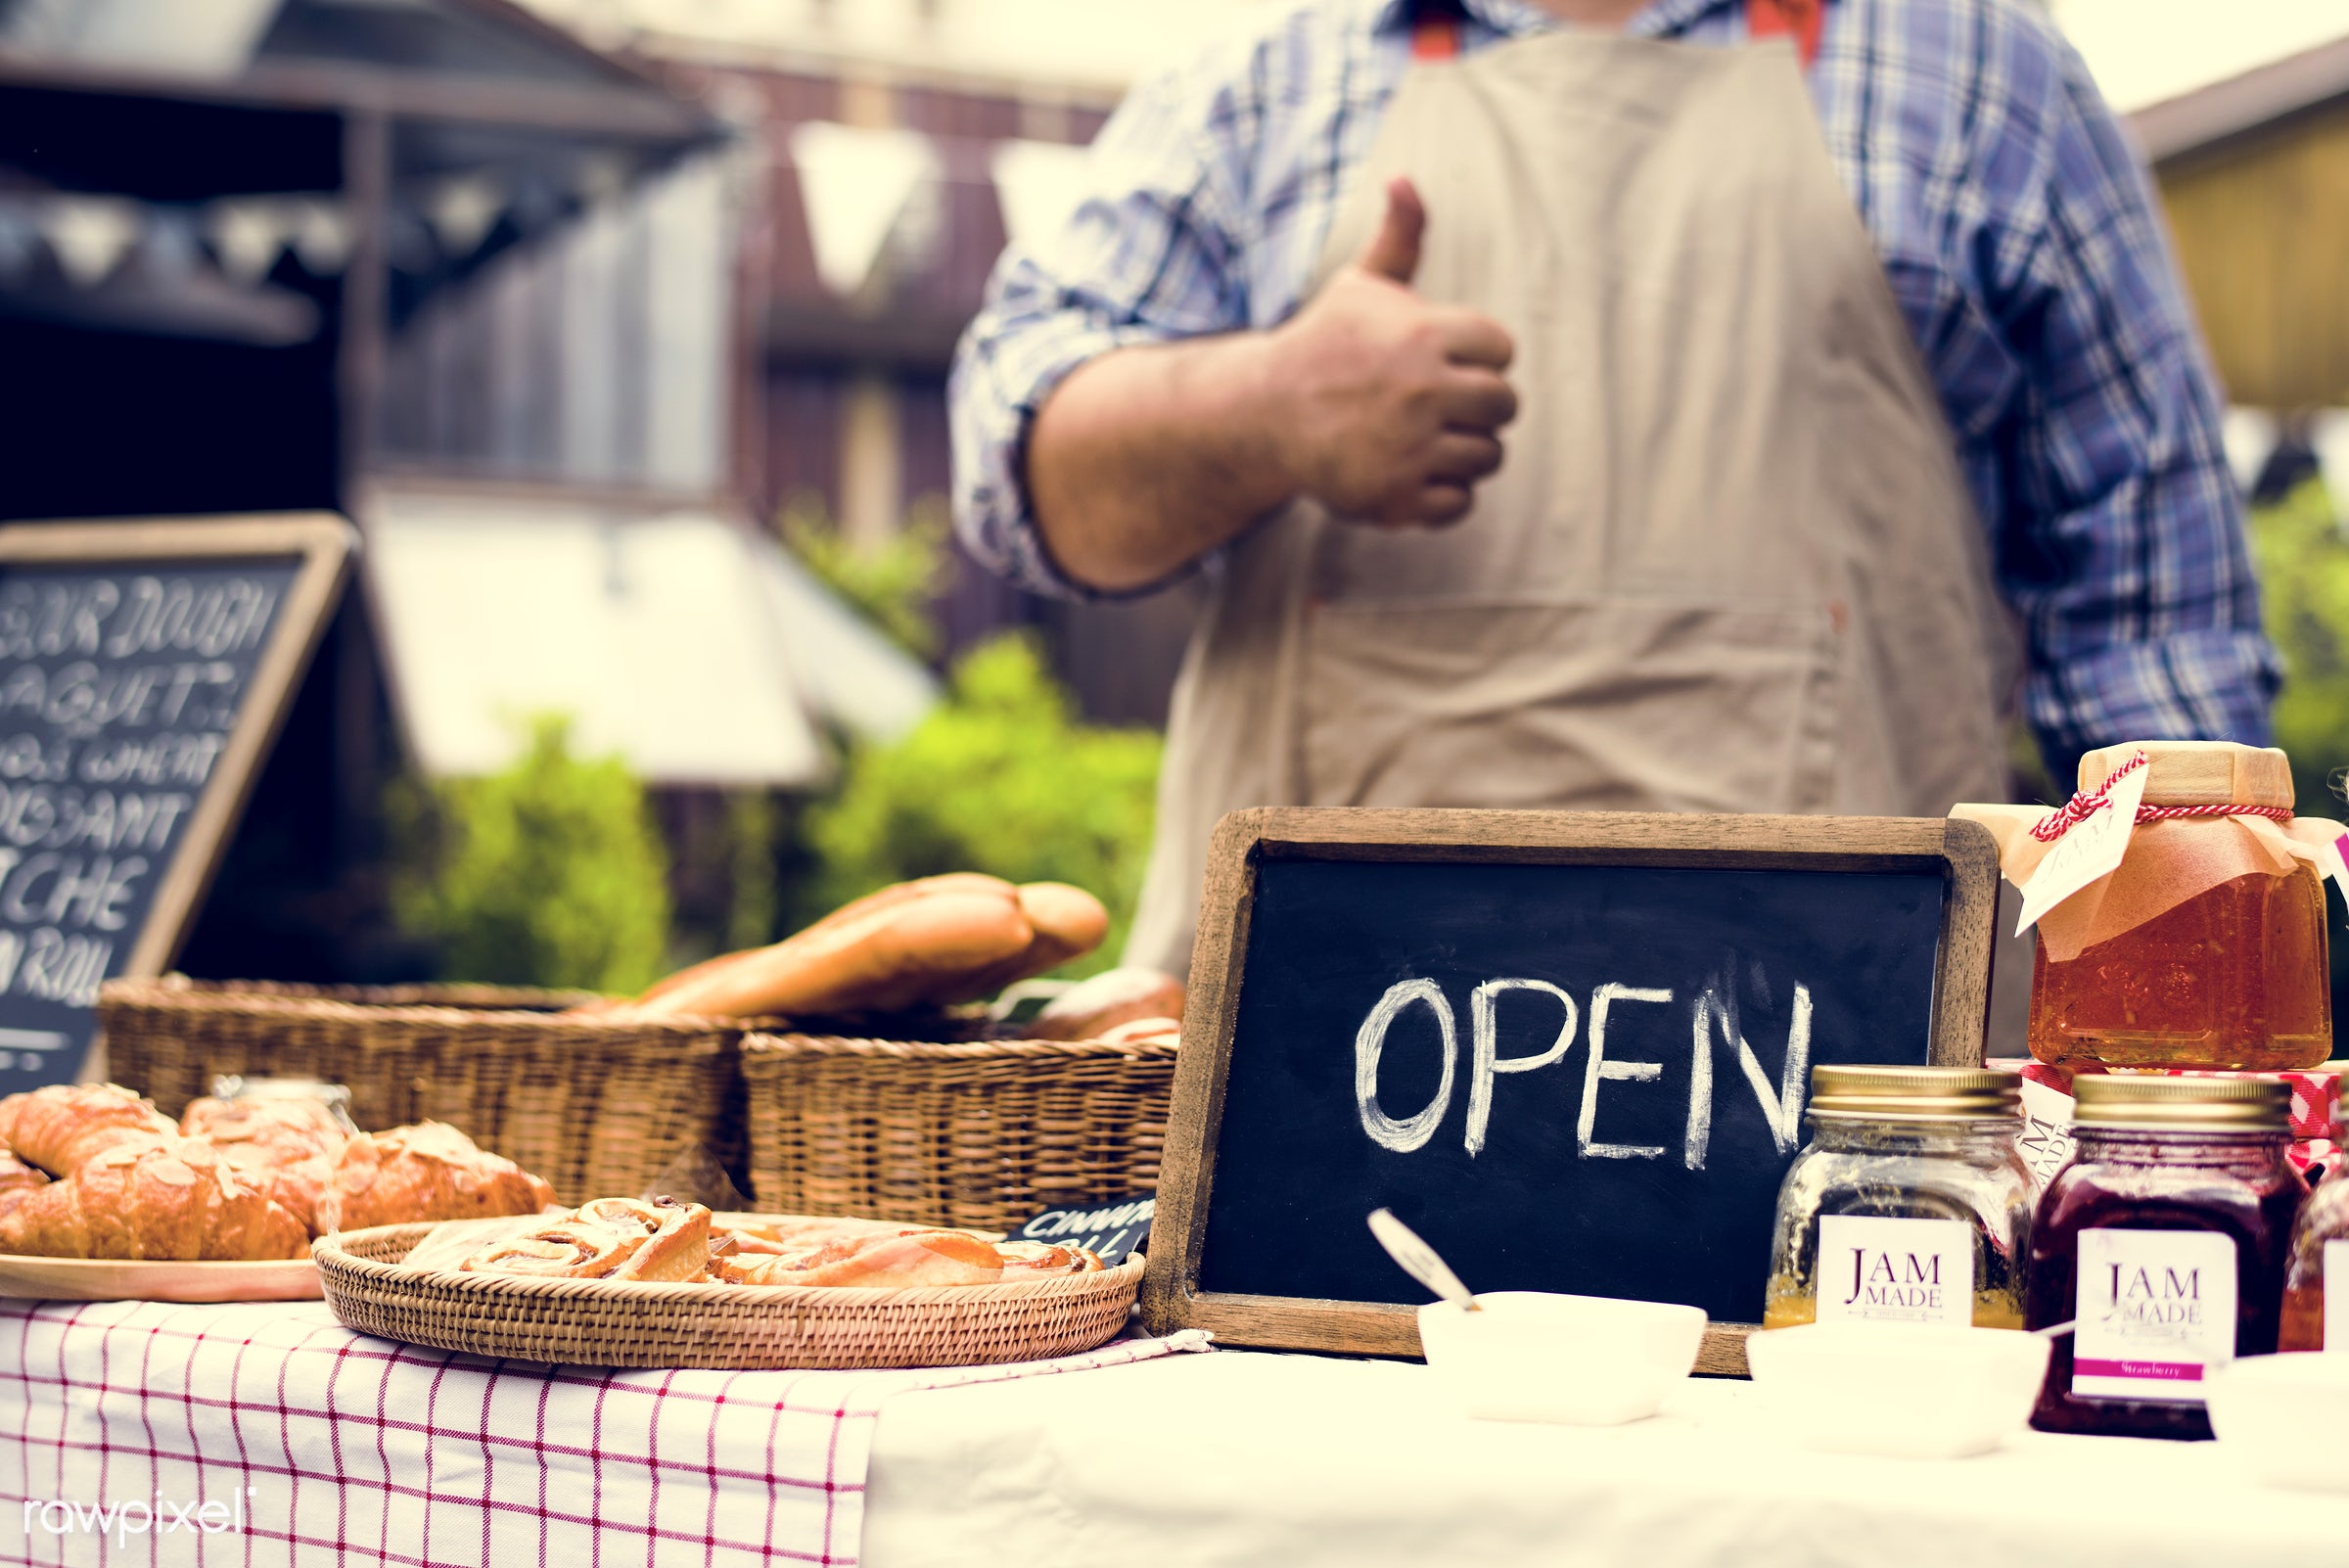 grocery, shop, cutout, person, stall, cuisine, pastries, test, homemade, people, taste, open, bakery, bread, jam, gourmet,...